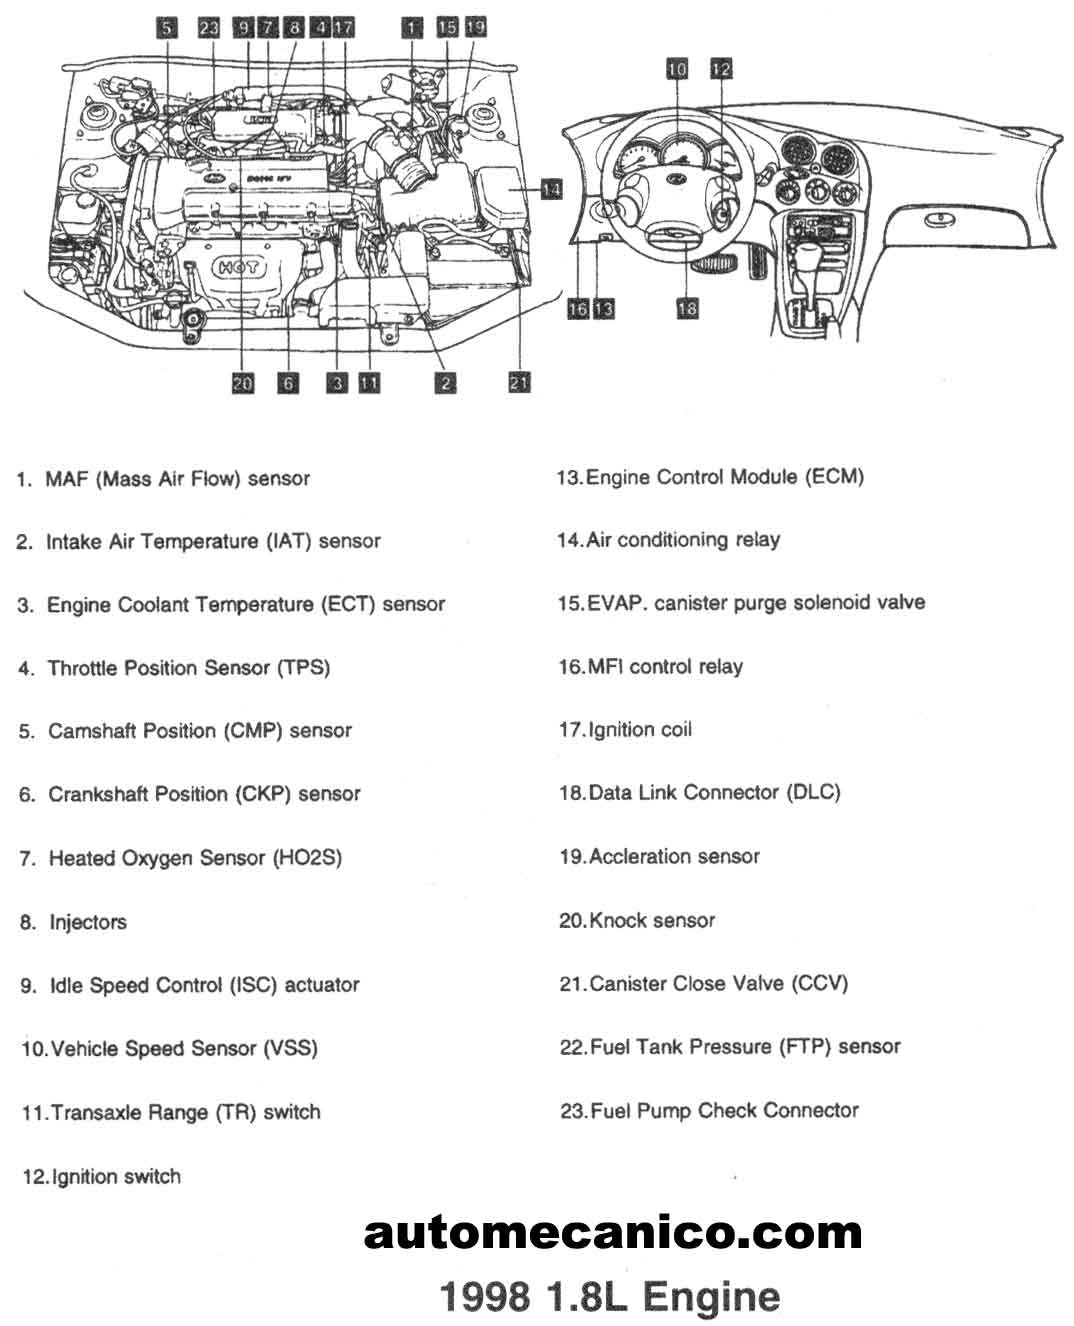 2001 Hyundai Elantra Engine Diagram, 2001, Free Engine